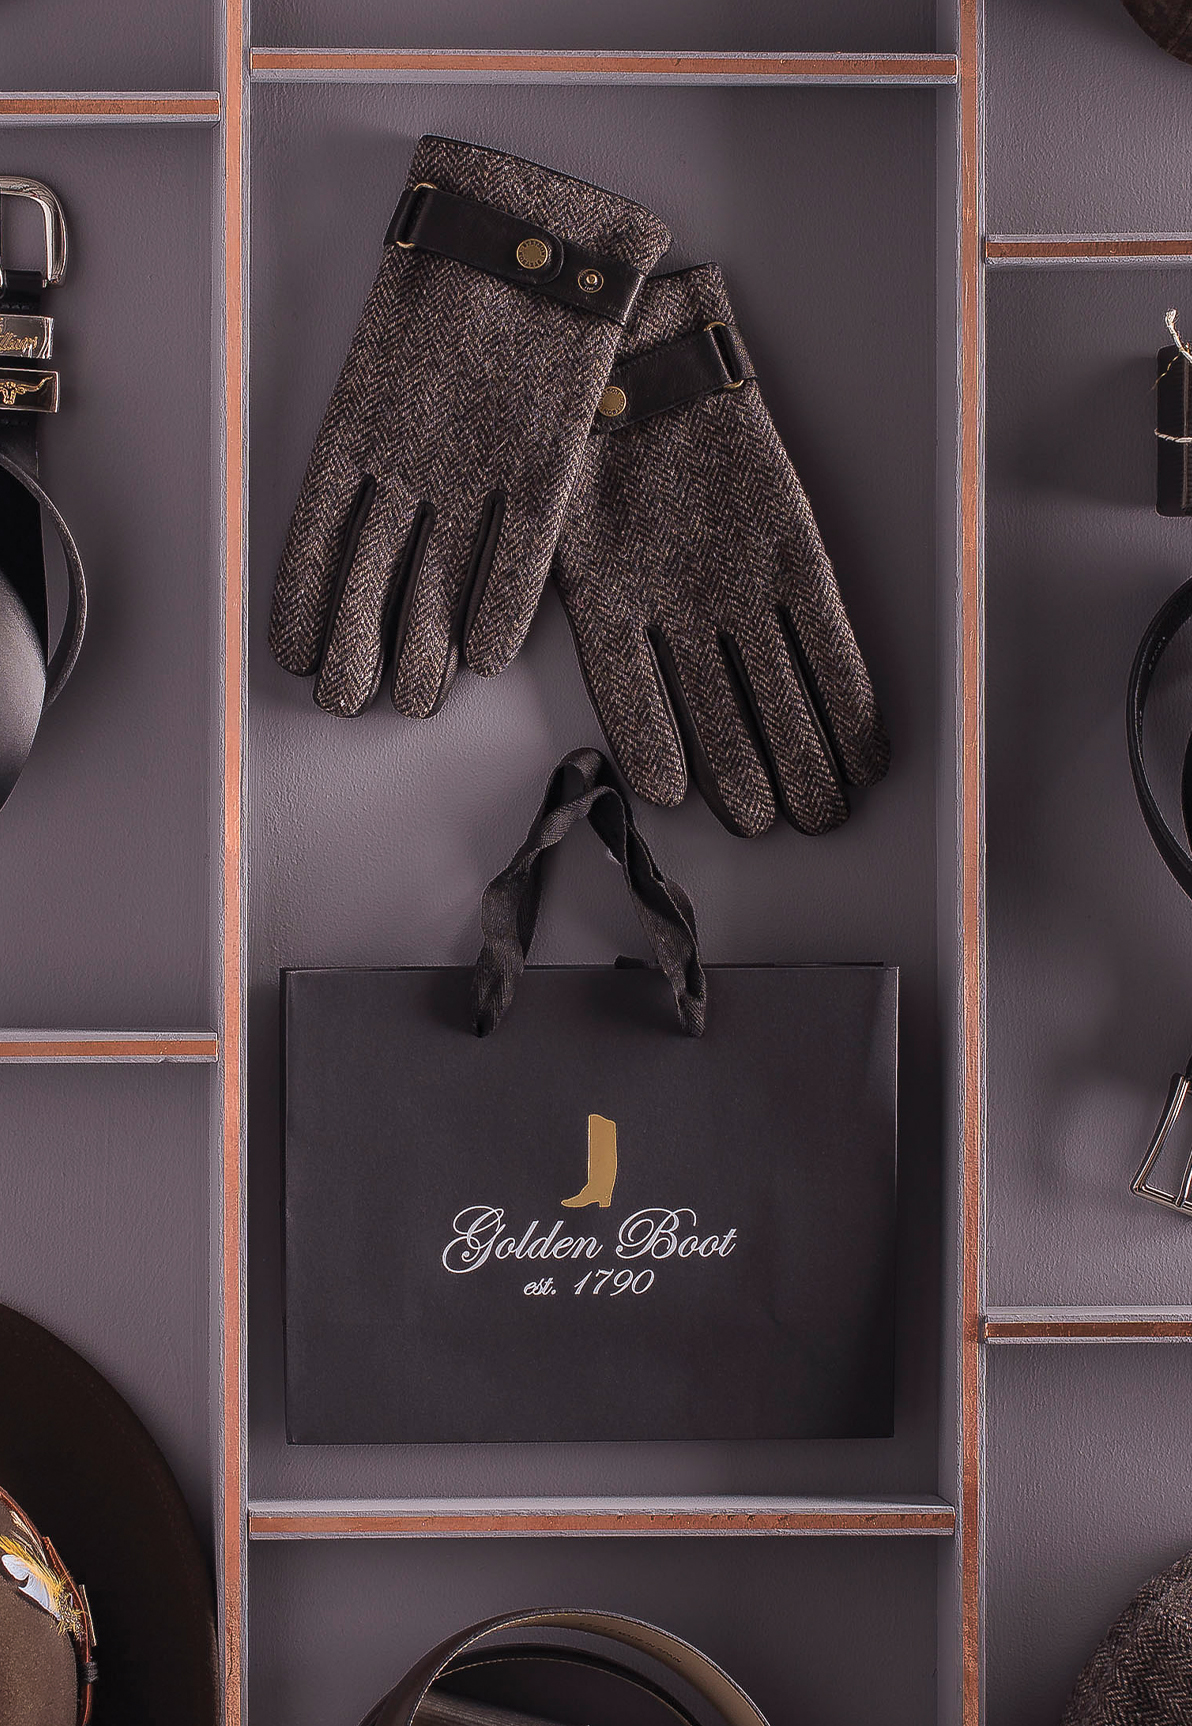 Golden Boot Exclusives & the Perfect Gifts for Him